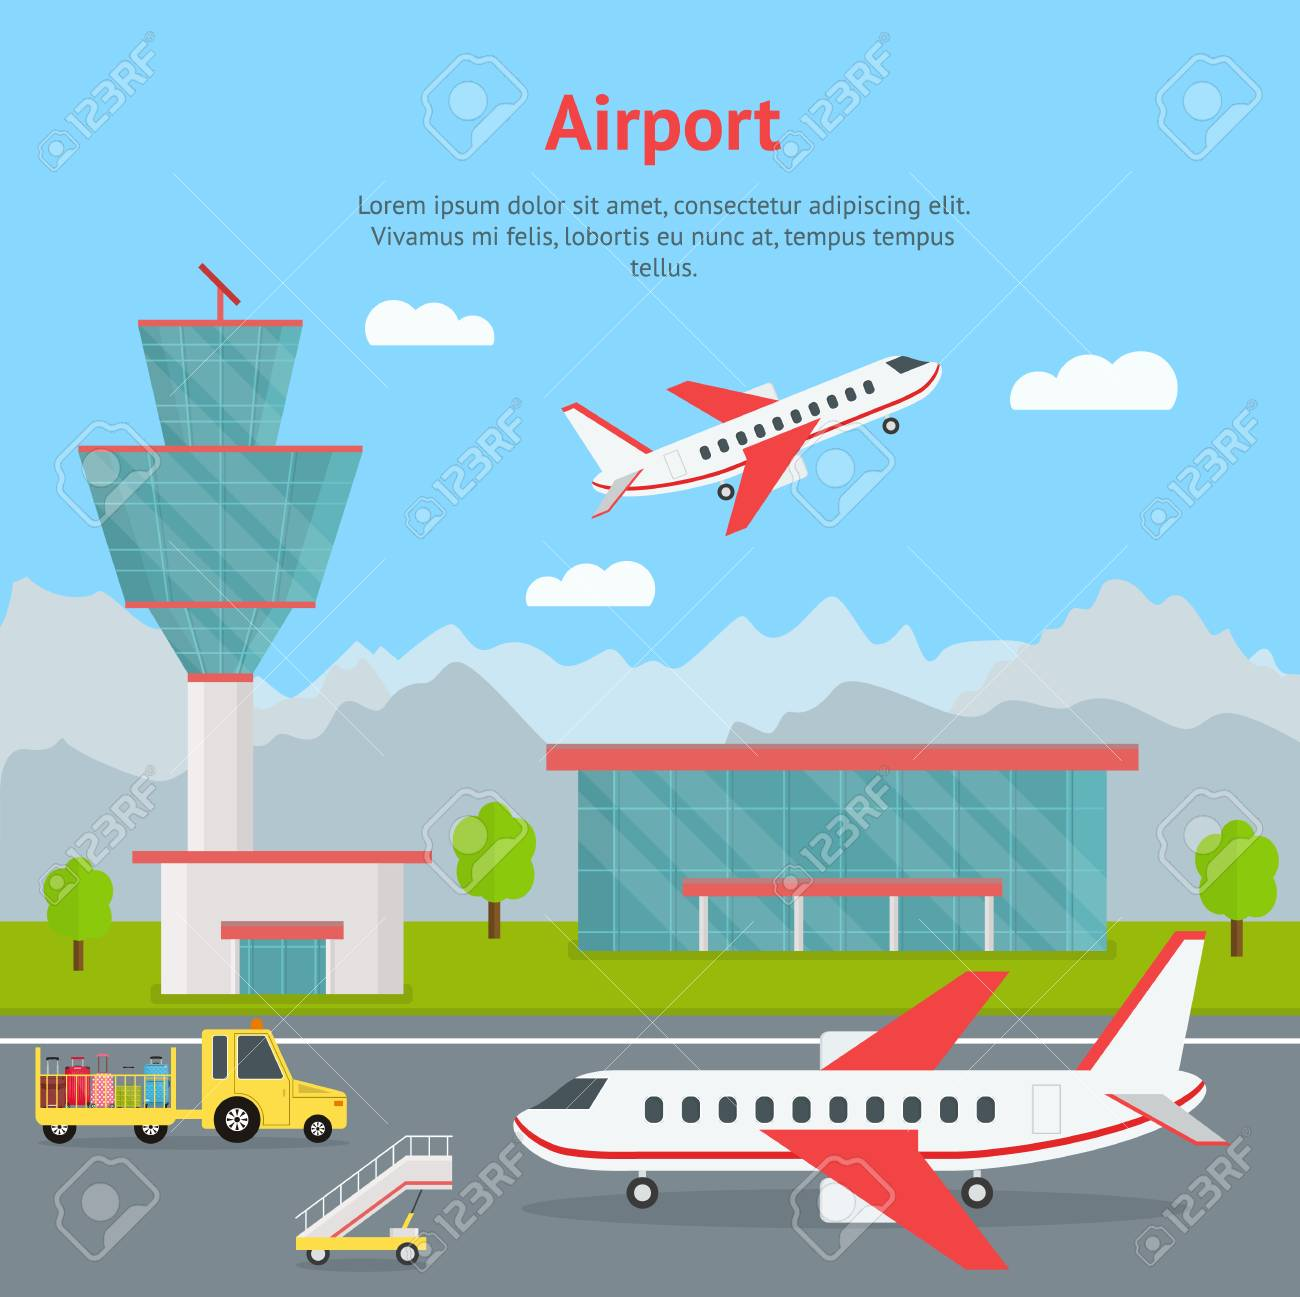 Cartoon Airport Building and Airplanes Concept Card. Vector - 103170019